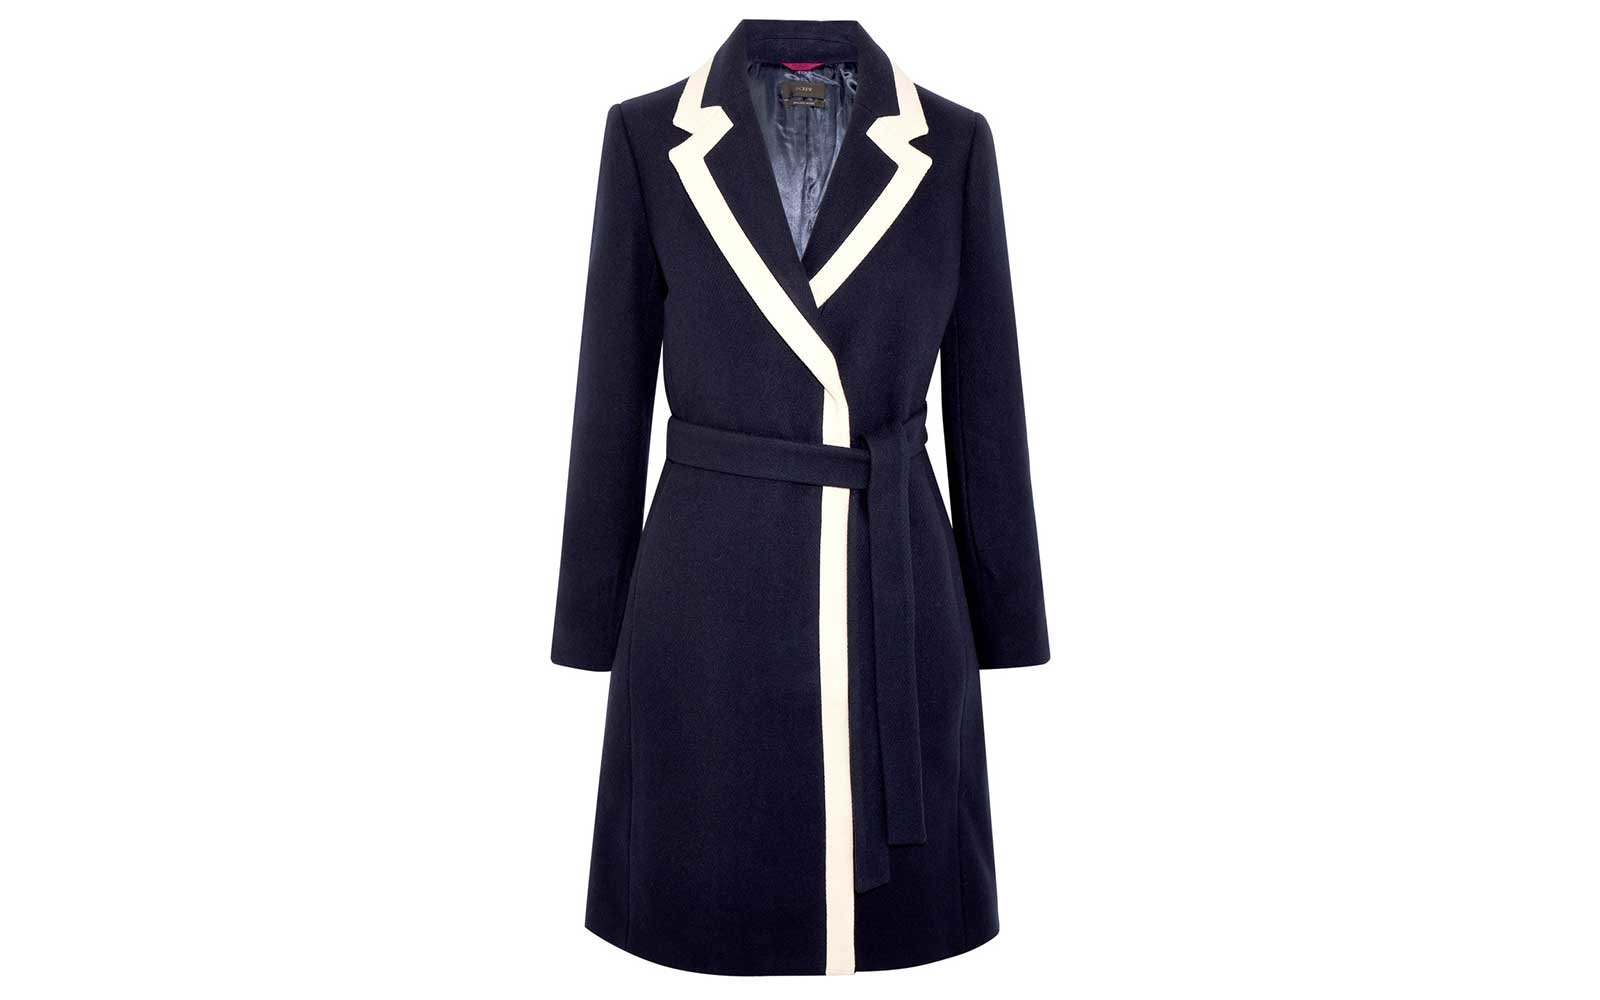 J Crew navy and white overcoat